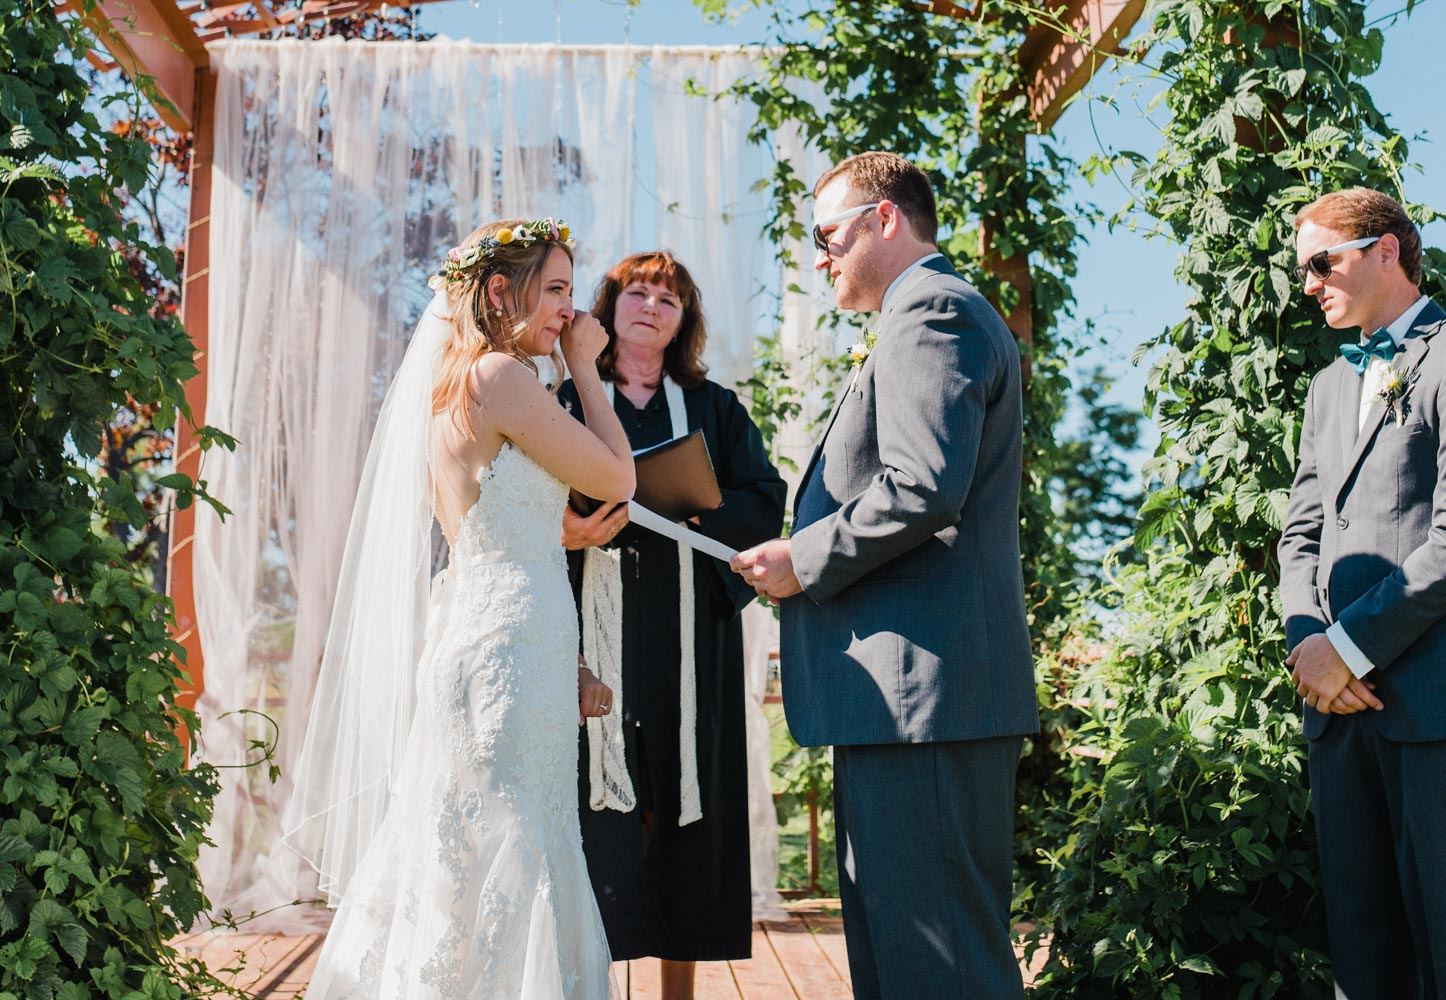 Bride wiping her tears as groom reads vows, with wedding officiant listening in background